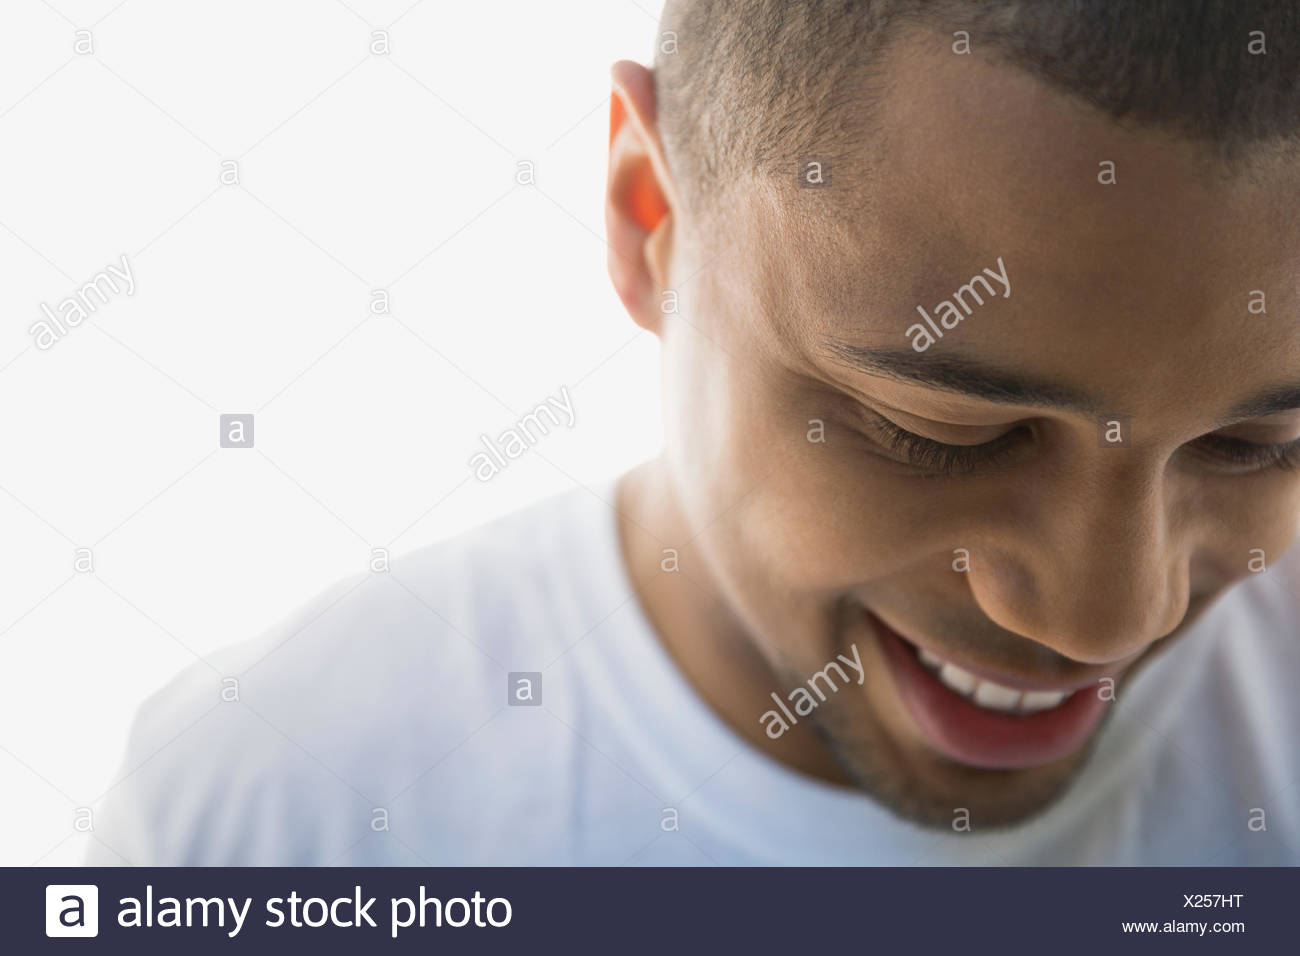 Close up portrait of smiling man looking down Photo Stock